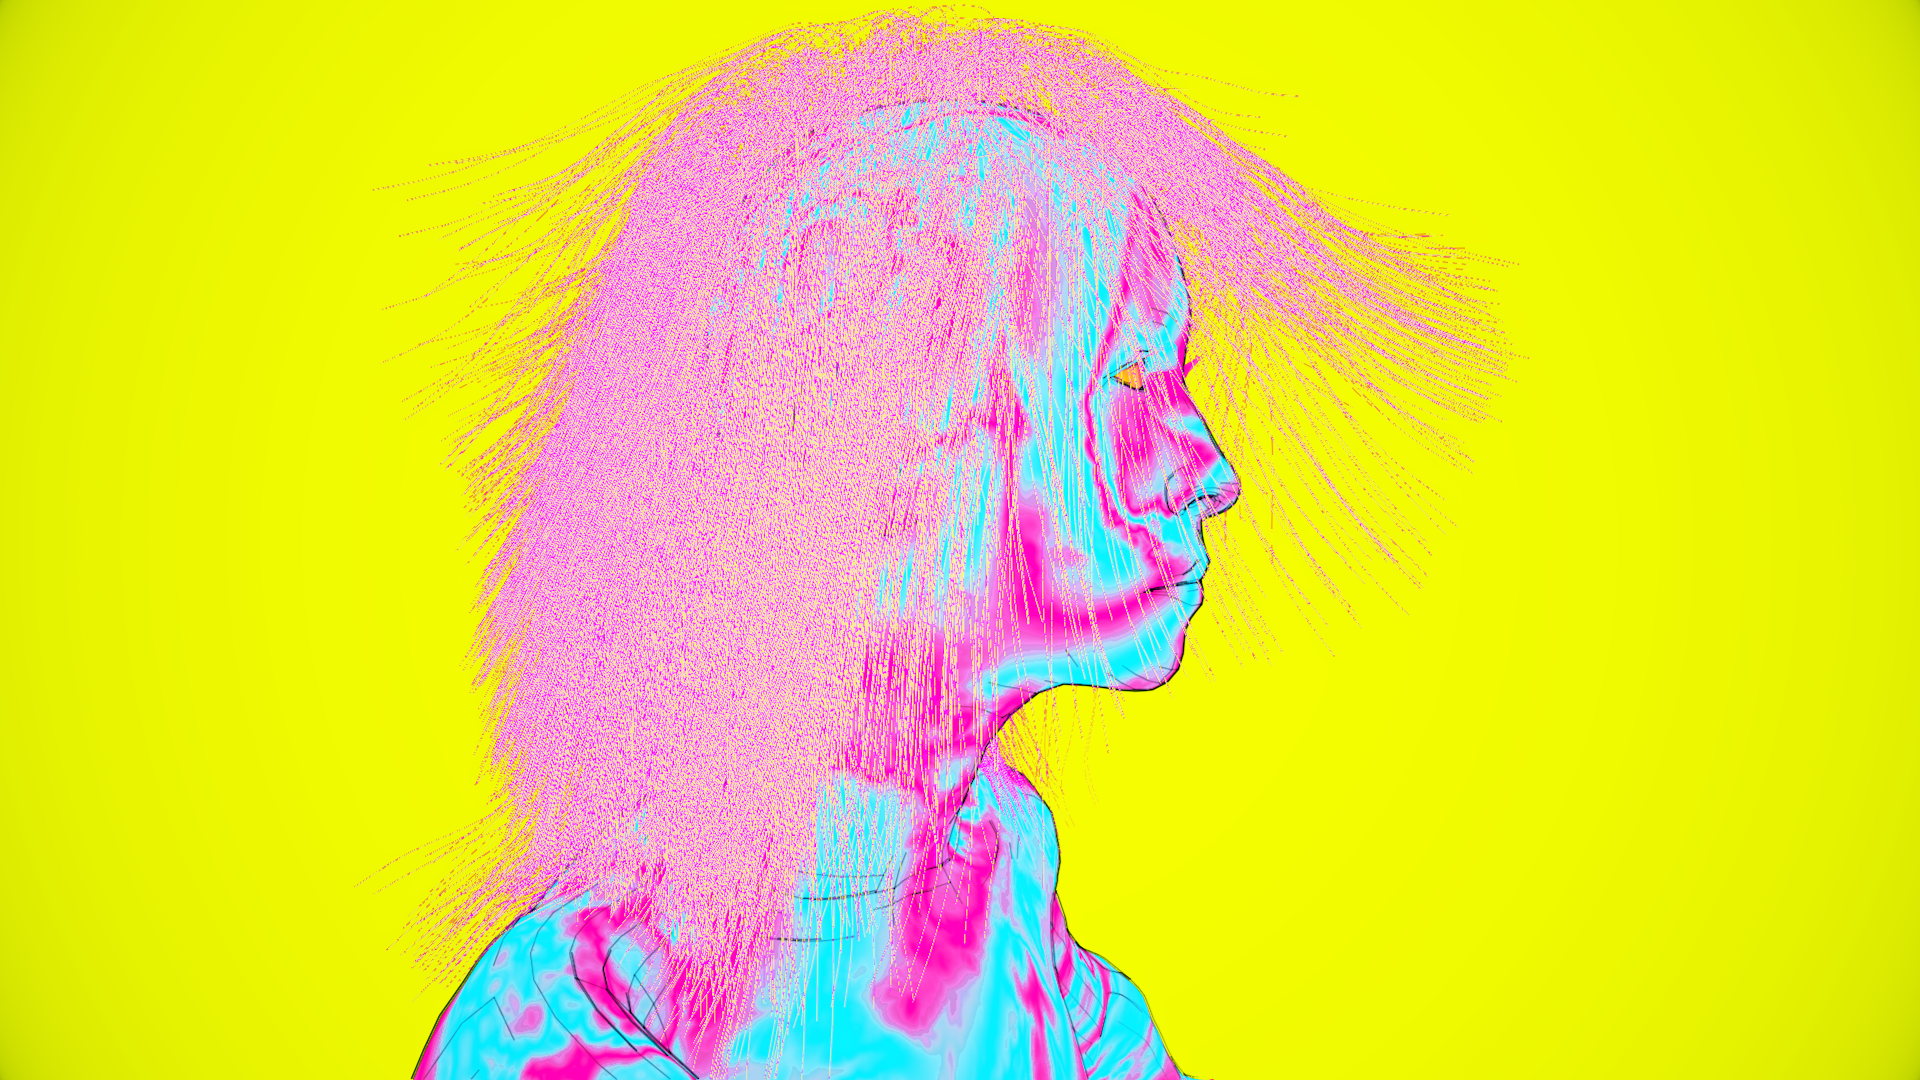 trippy girl_i2.png